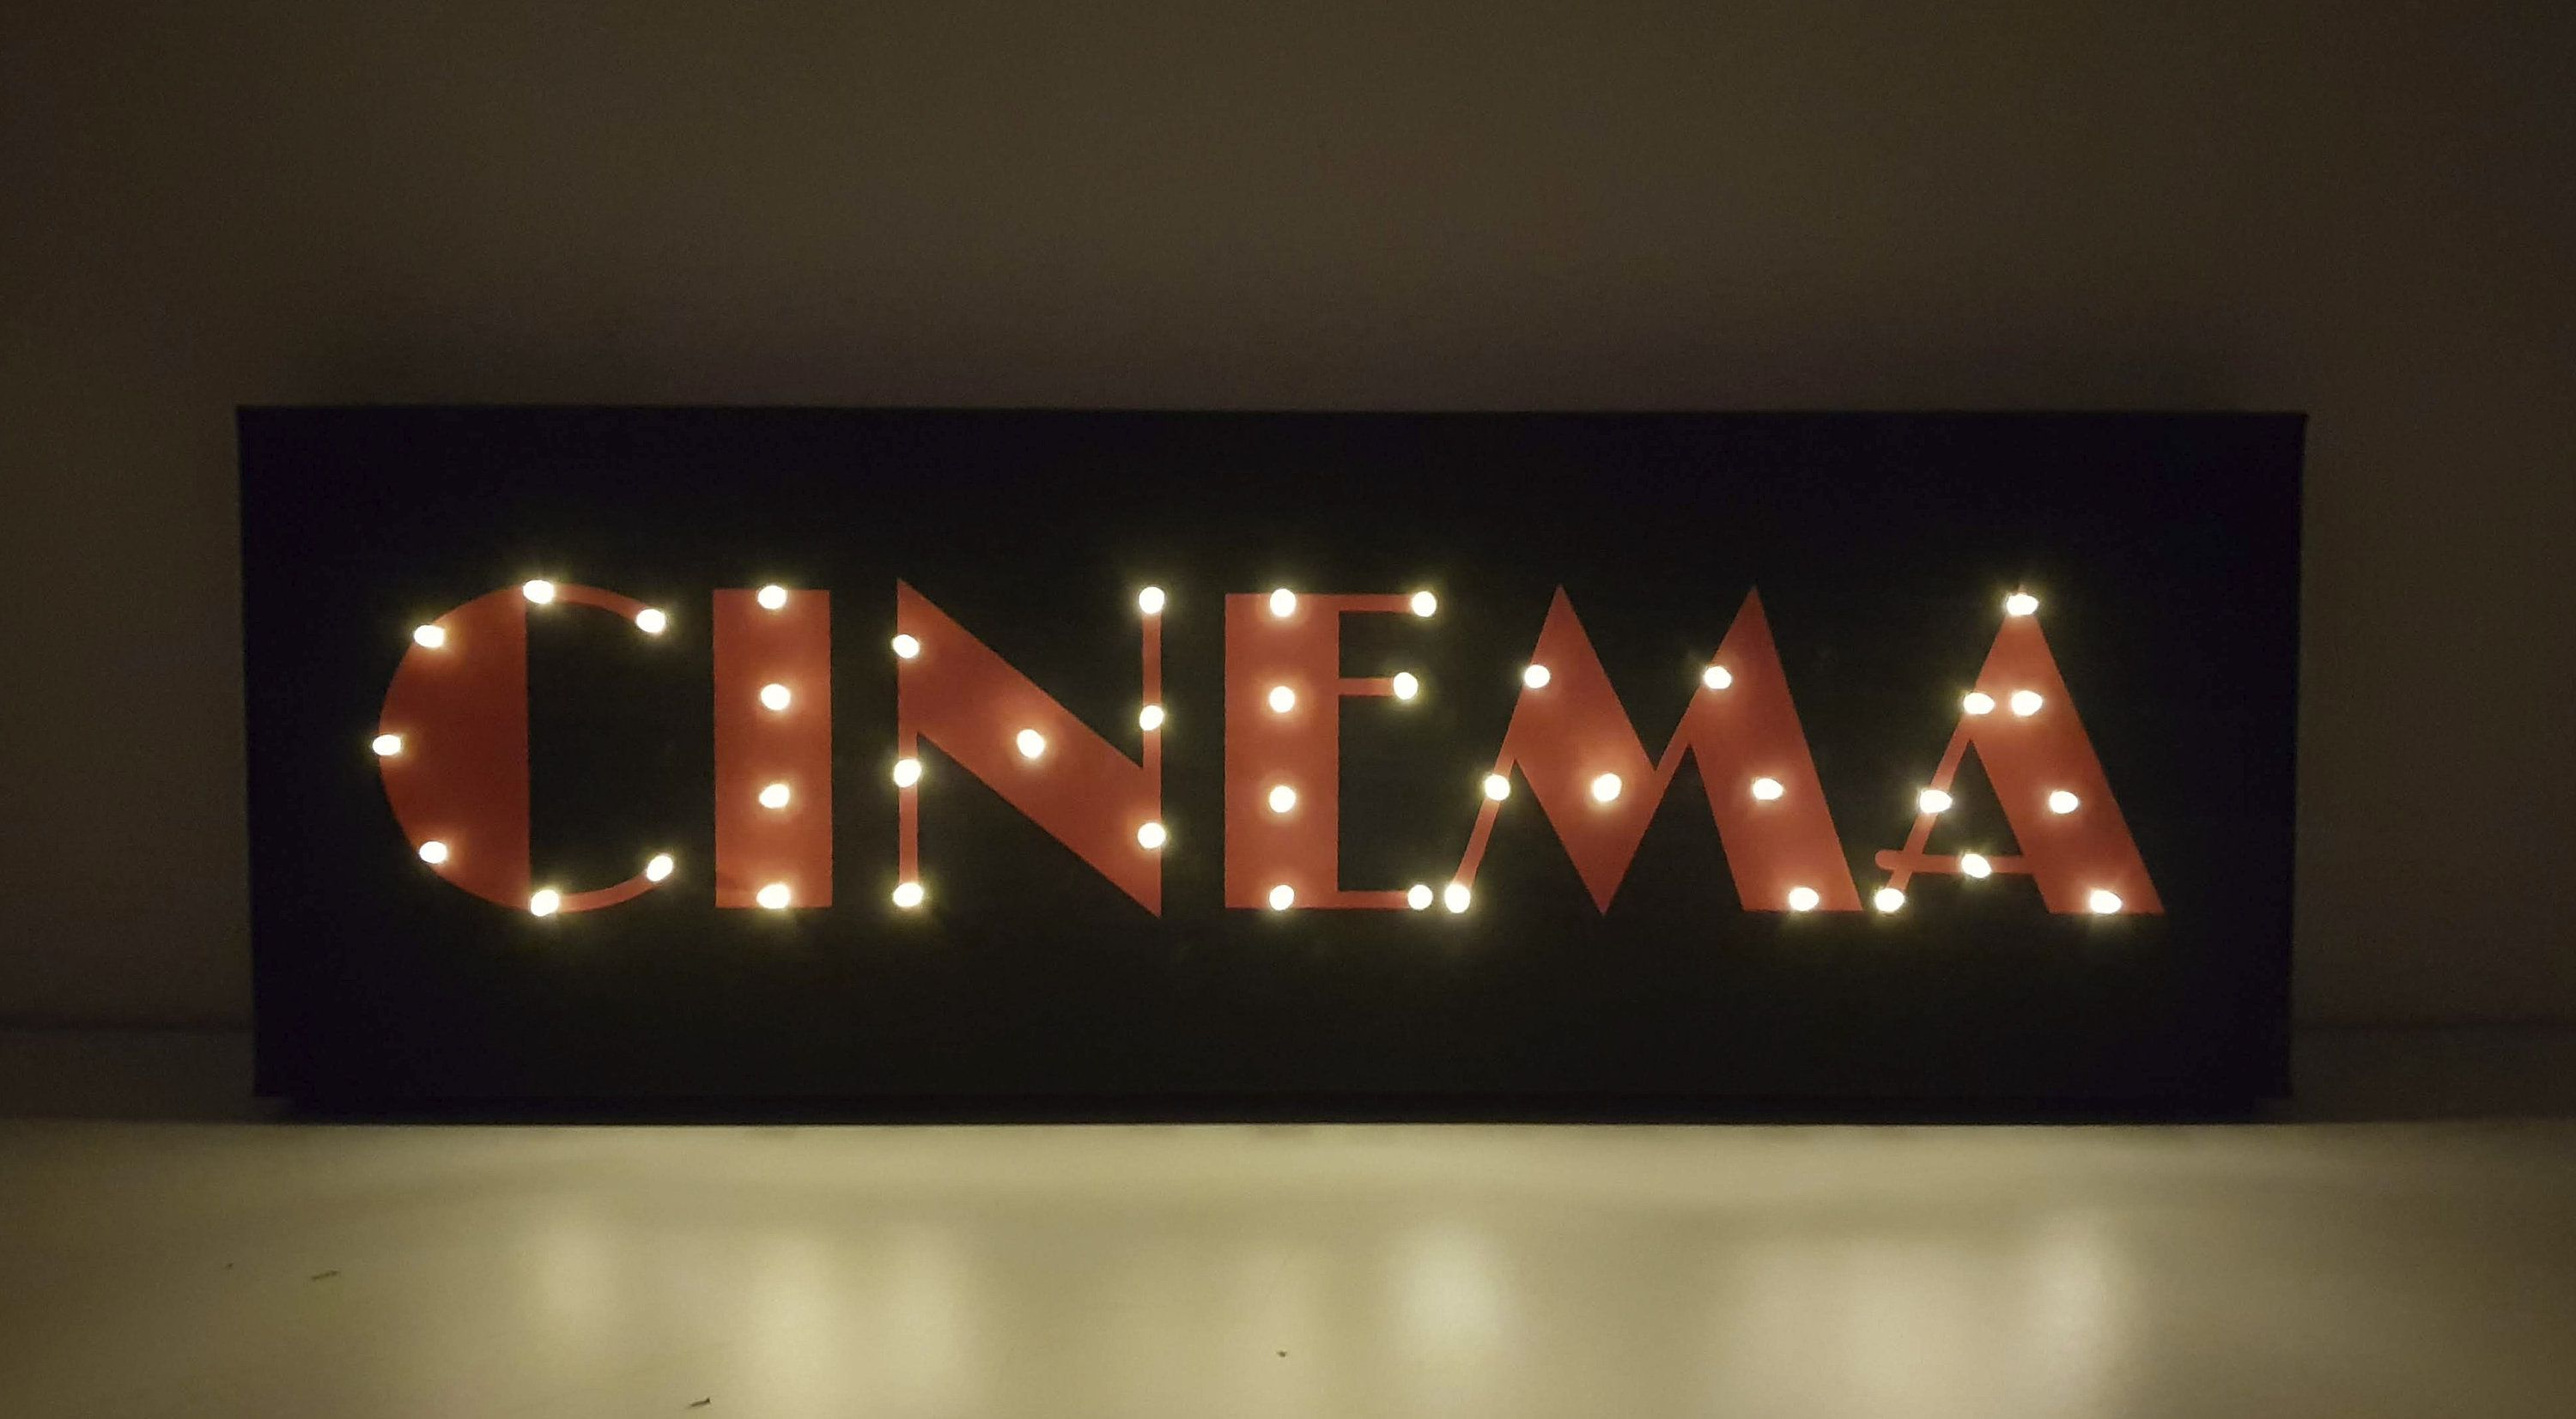 Cinema Room Decor, Home Cinema, Cinema Sign, Personalized Theater Sign, Home Theater Decor, Theater Room Decor, Theater Sign, Light Up Sign